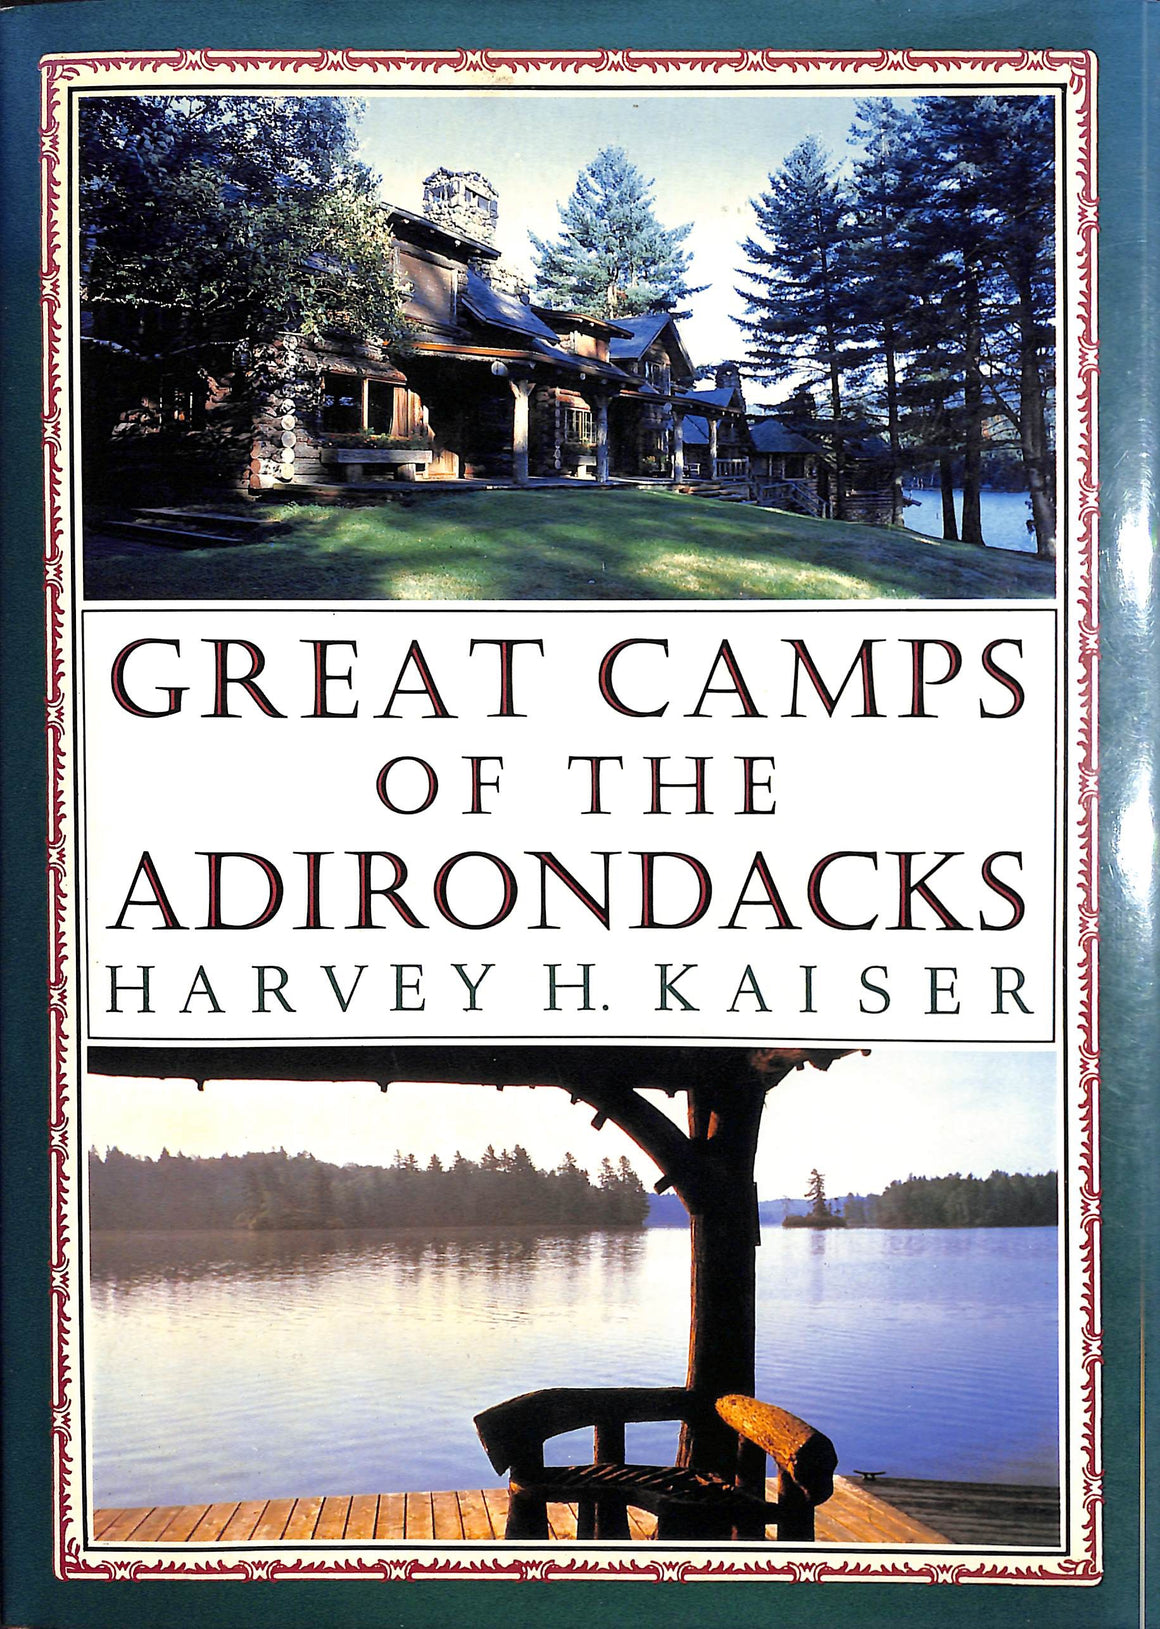 """Great Camps of The Adirondacks"" by Harvey H. Kaiser"